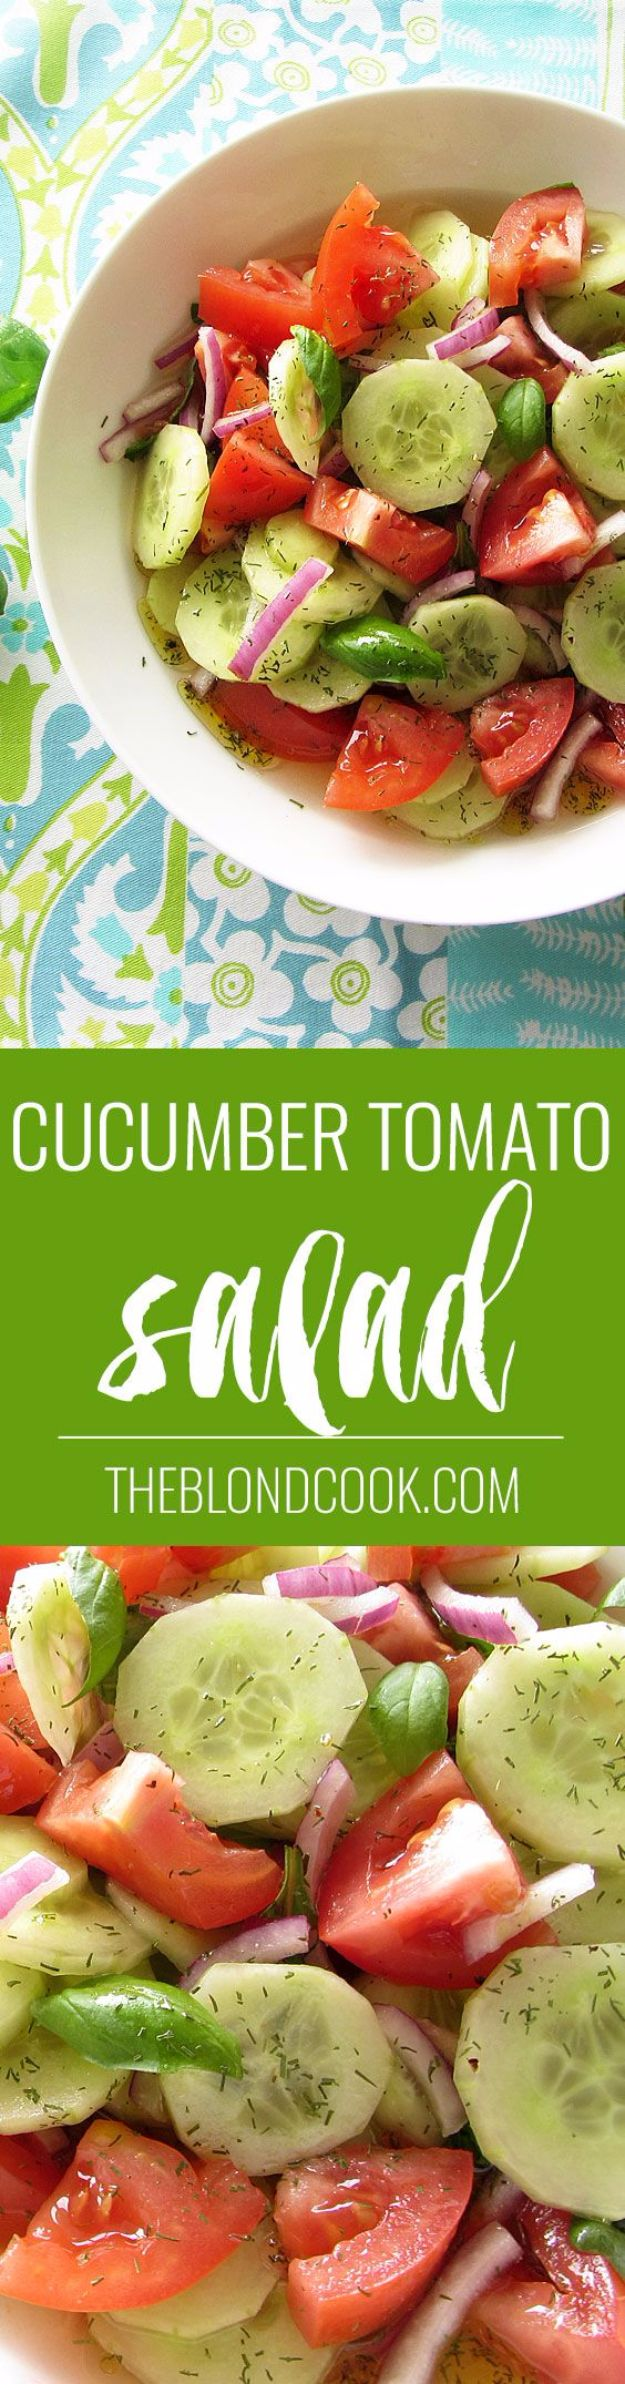 Best Easter Dinner Recipes - Cucumber Tomato Salad - Easy Recipe Ideas for Easter Dinners and Holiday Meals for Families - Side Dishes, Slow Cooker Recipe Tutorials, Main Courses, Traditional Meat, Vegetable and Dessert Ideas - Desserts, Pies, Cakes, Ham and Beef, Lamb - DIY Projects and Crafts by DIY JOY